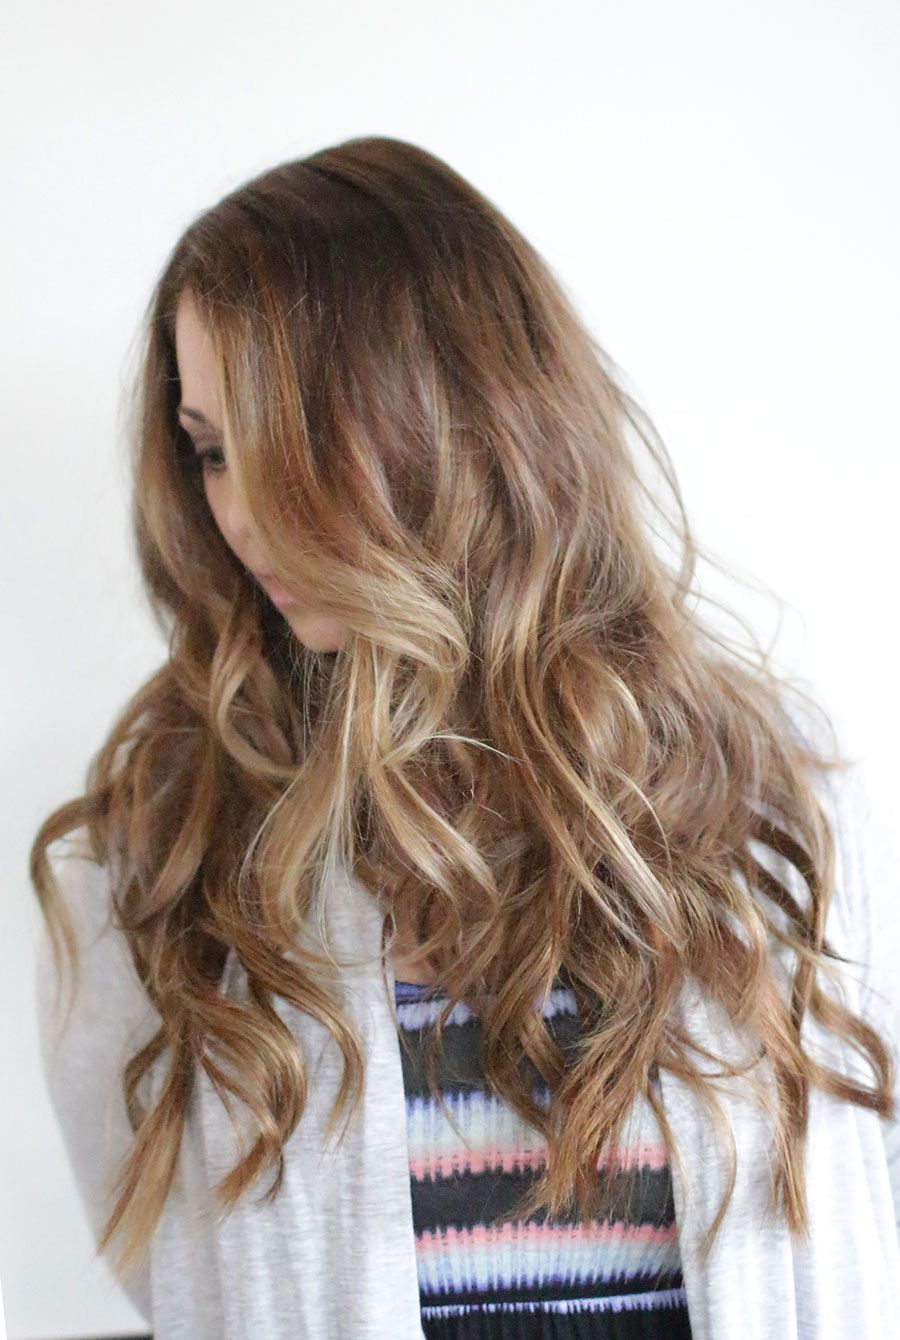 How To Describe What Color You Want Natural Beaded Rows Hair